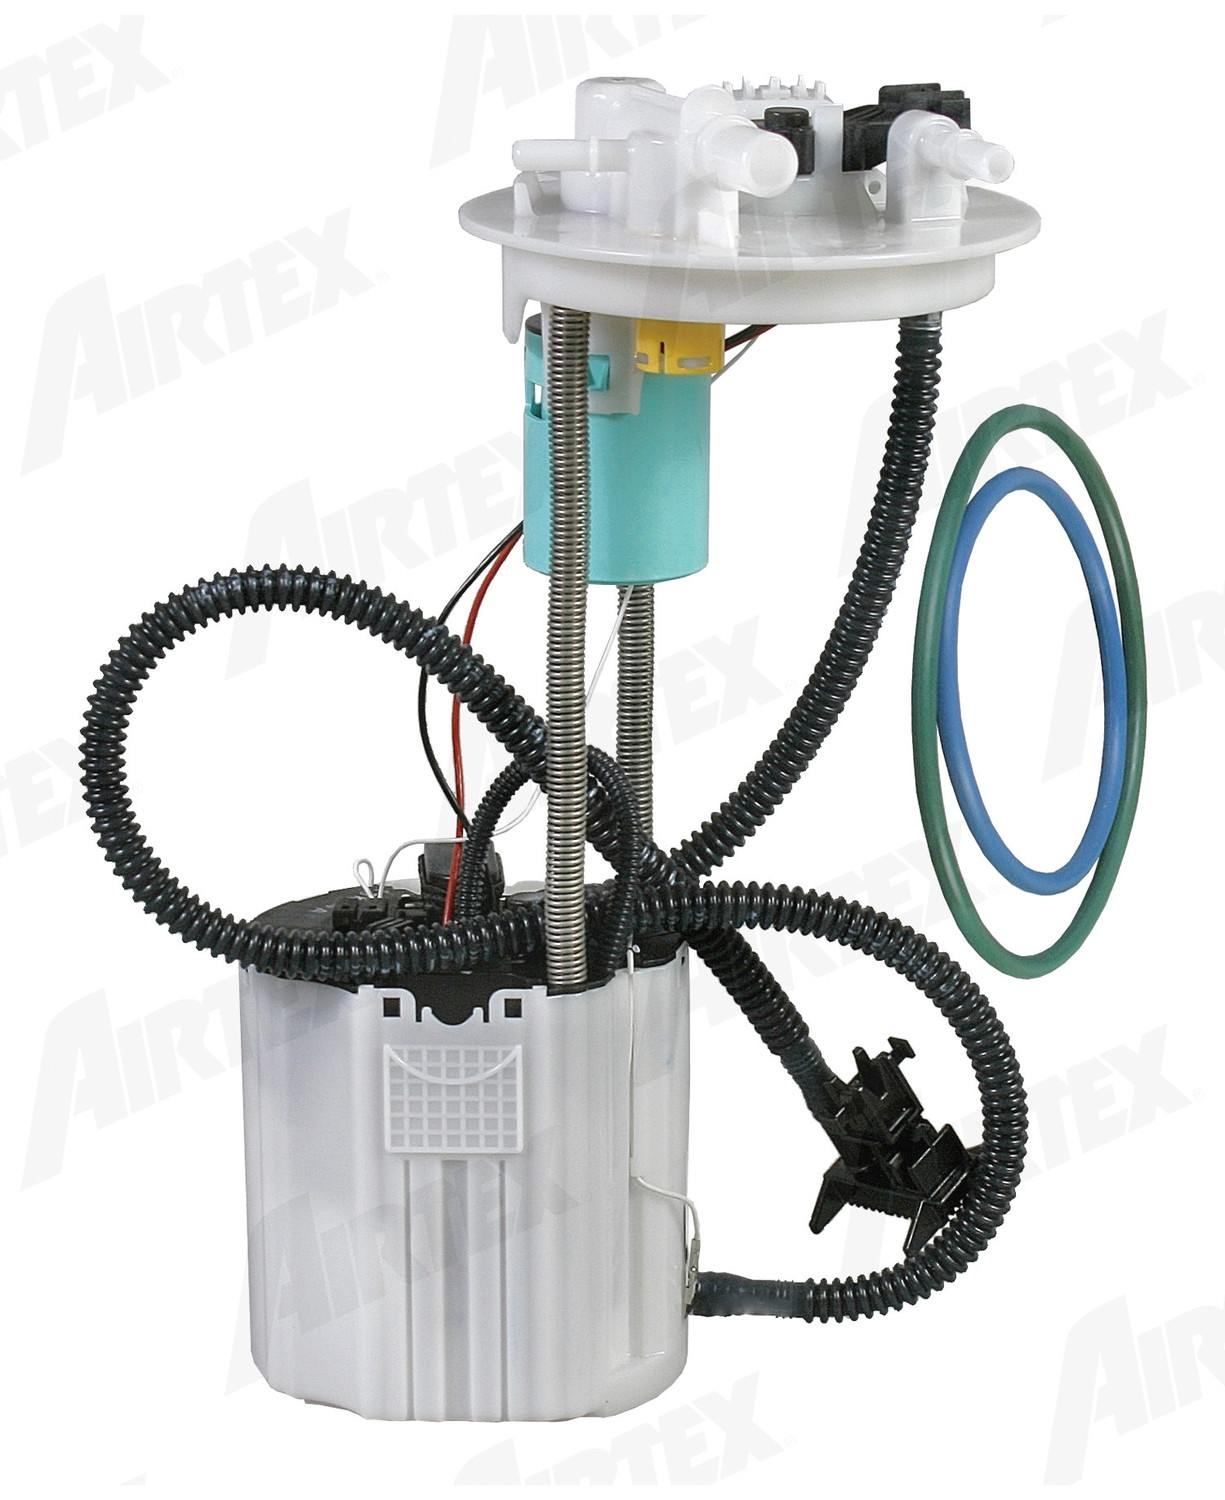 Malibu 2009 chevy malibu fuel pump : Buy Fuel And Emissions Parts for CHEVROLET vehicle ...